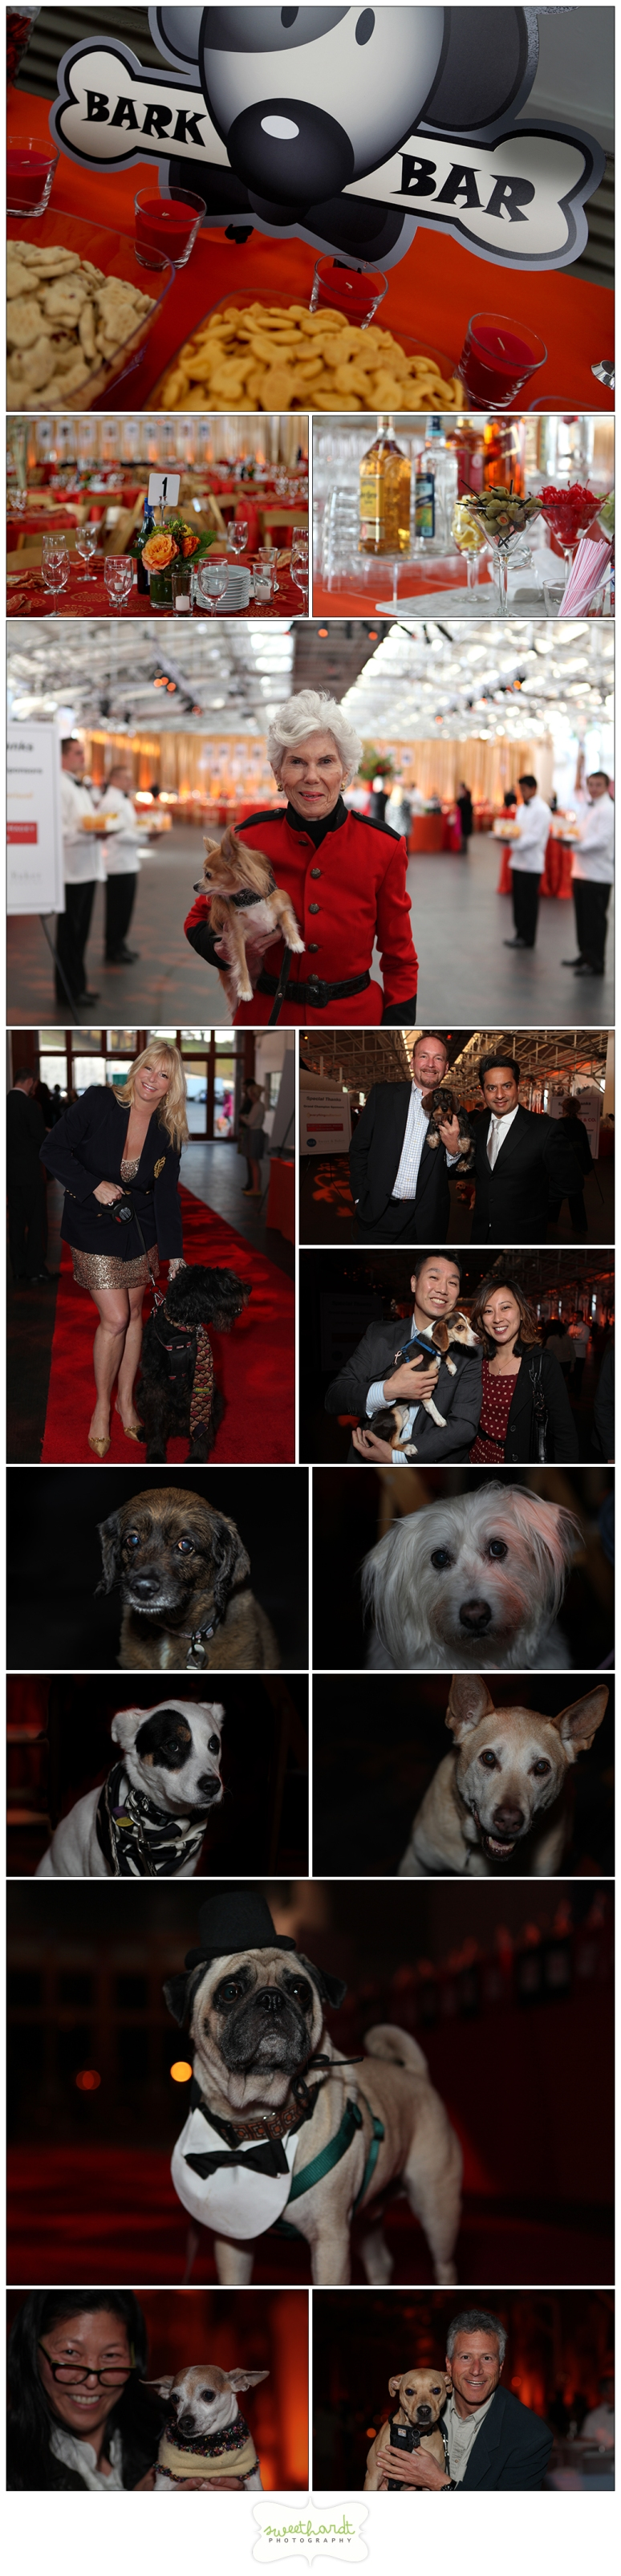 Bark & Whine Ball 2012